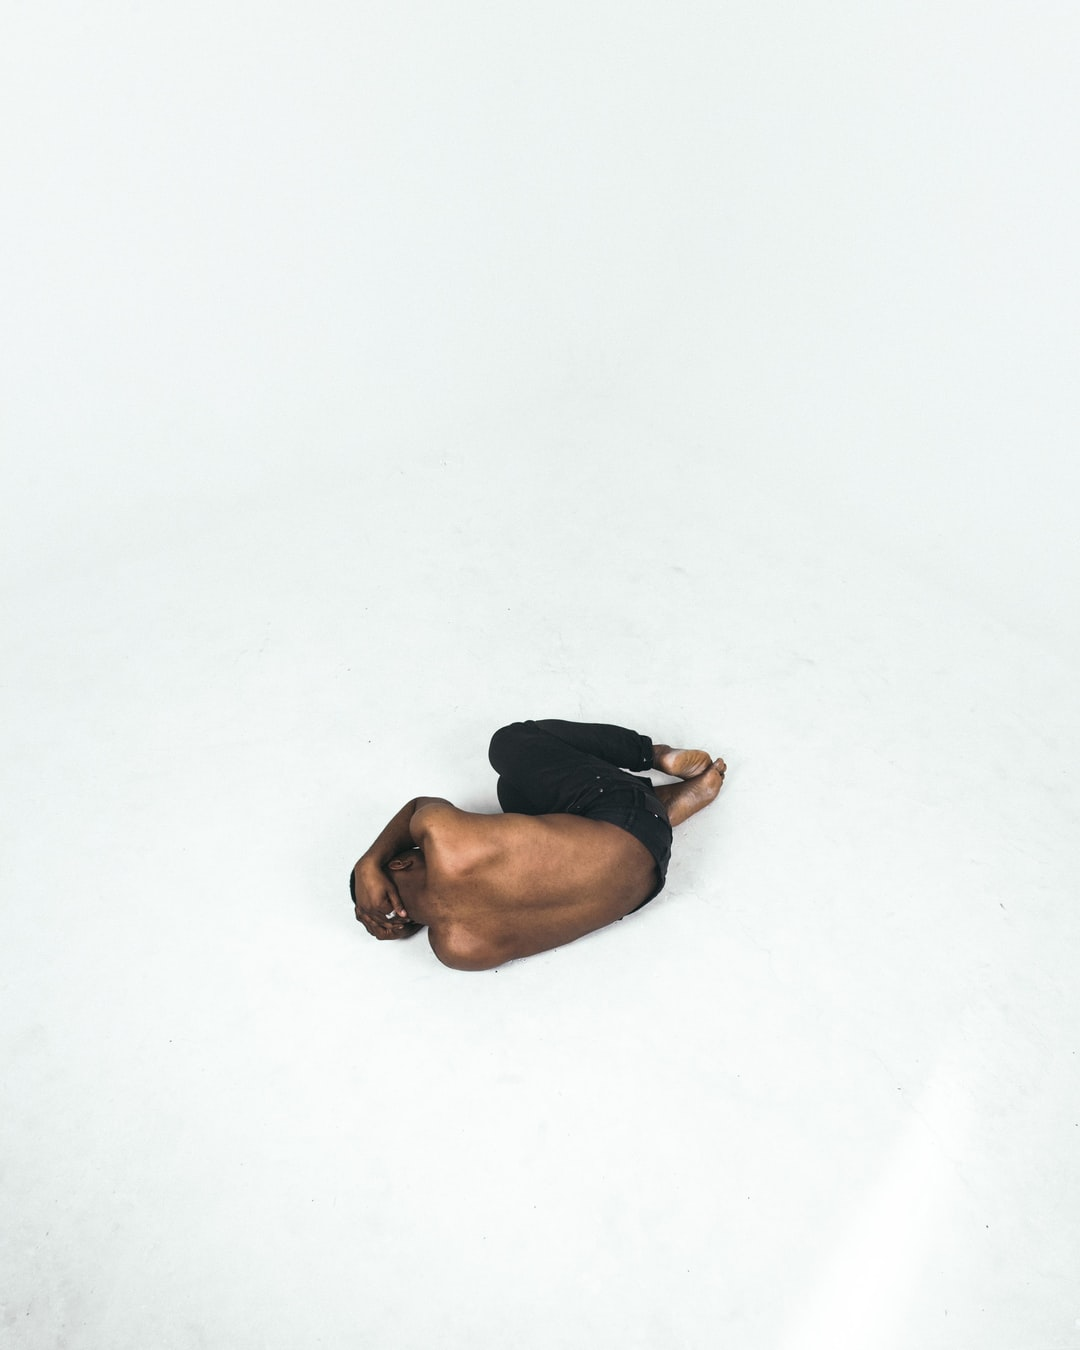 person lying down on white surface